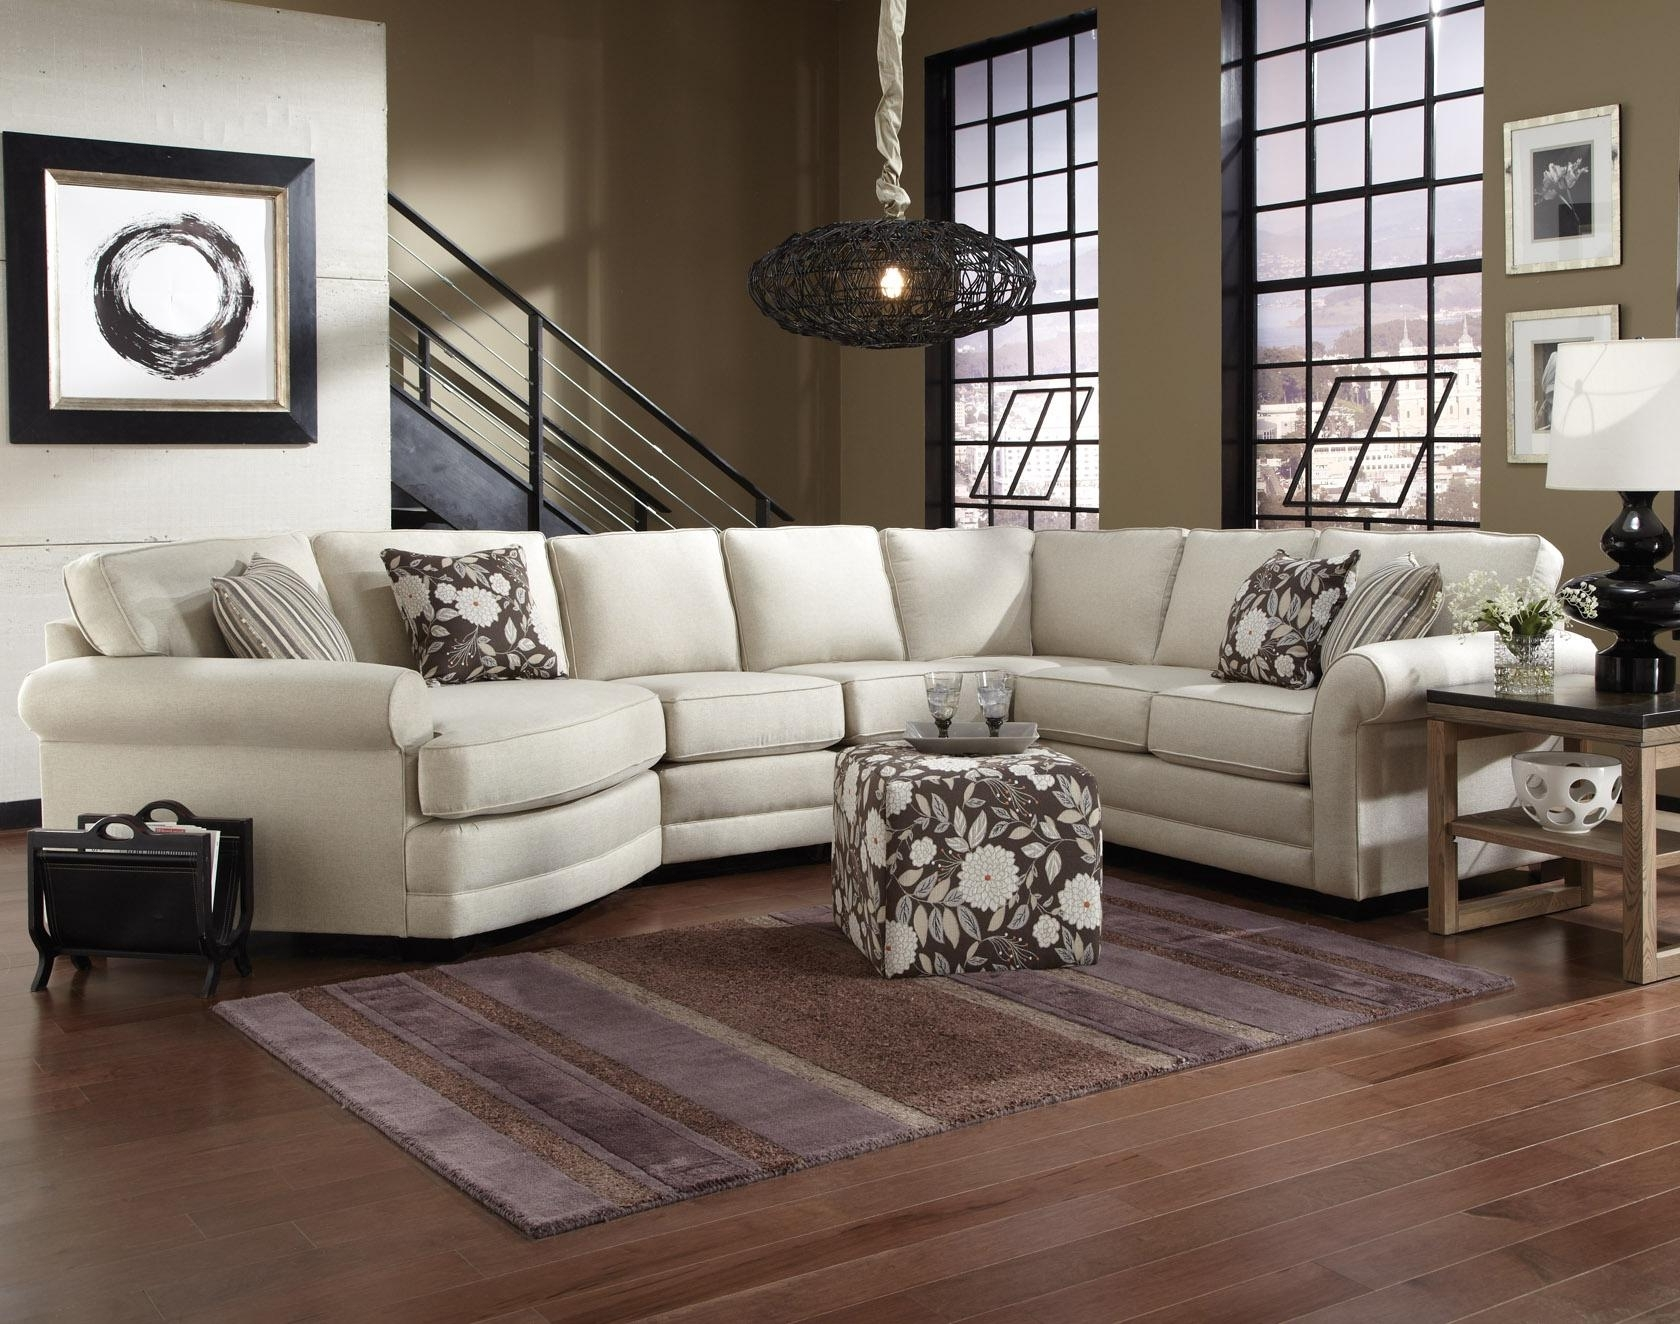 Dunk Throughout Most Current Sectional Sofas With Cuddler (View 5 of 20)